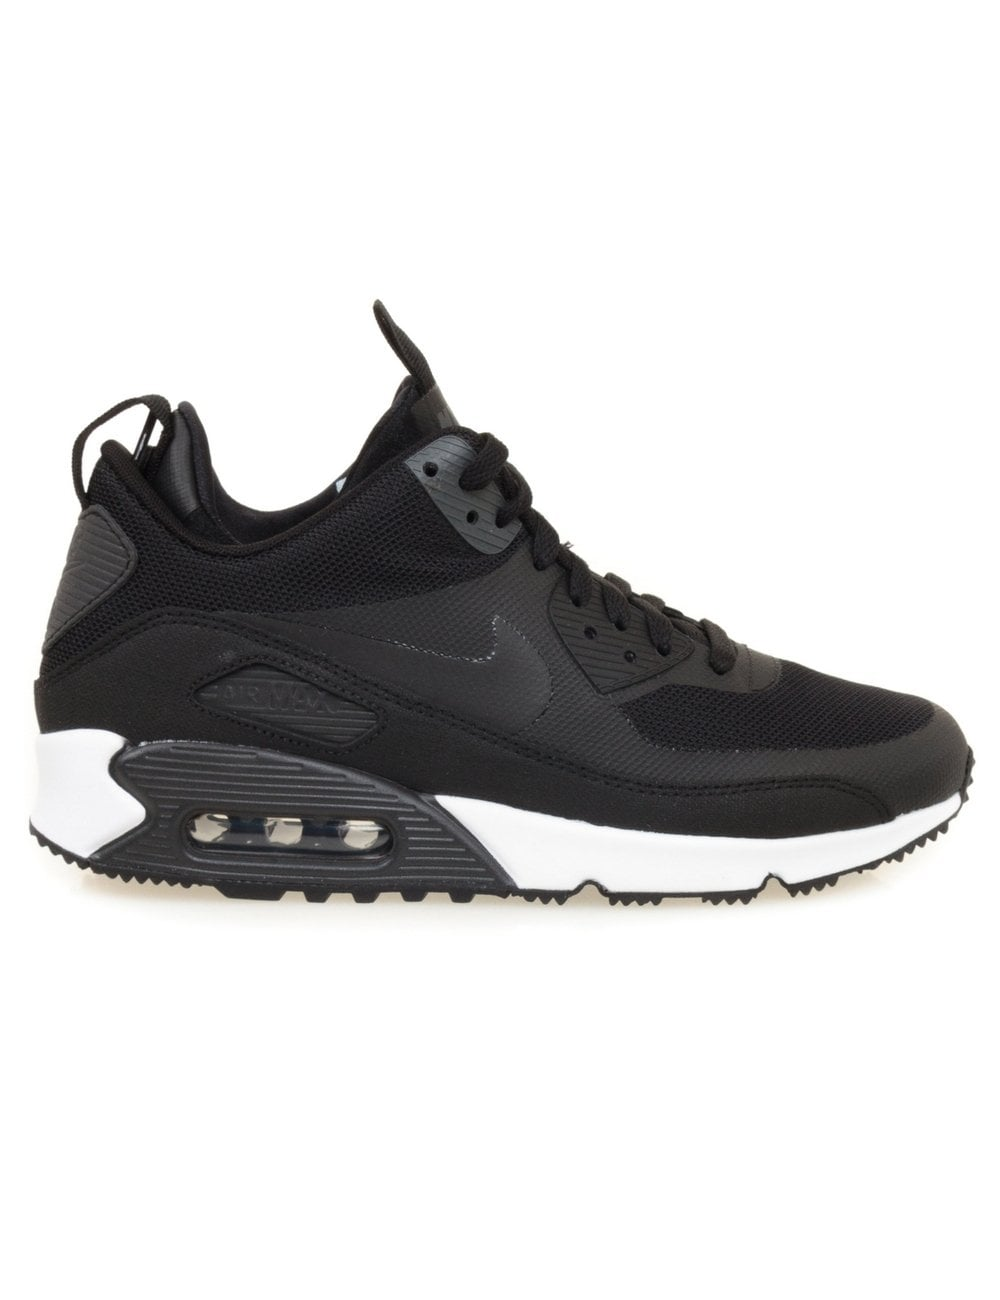 quality design b5e7c 3a981 discount nike air max 90 sneakerboot ice rice yellow khaki 681714 021 140  64db5 e1280  promo code for air max 90 sneakerboot ns black dark charcoal  7cc53 ...